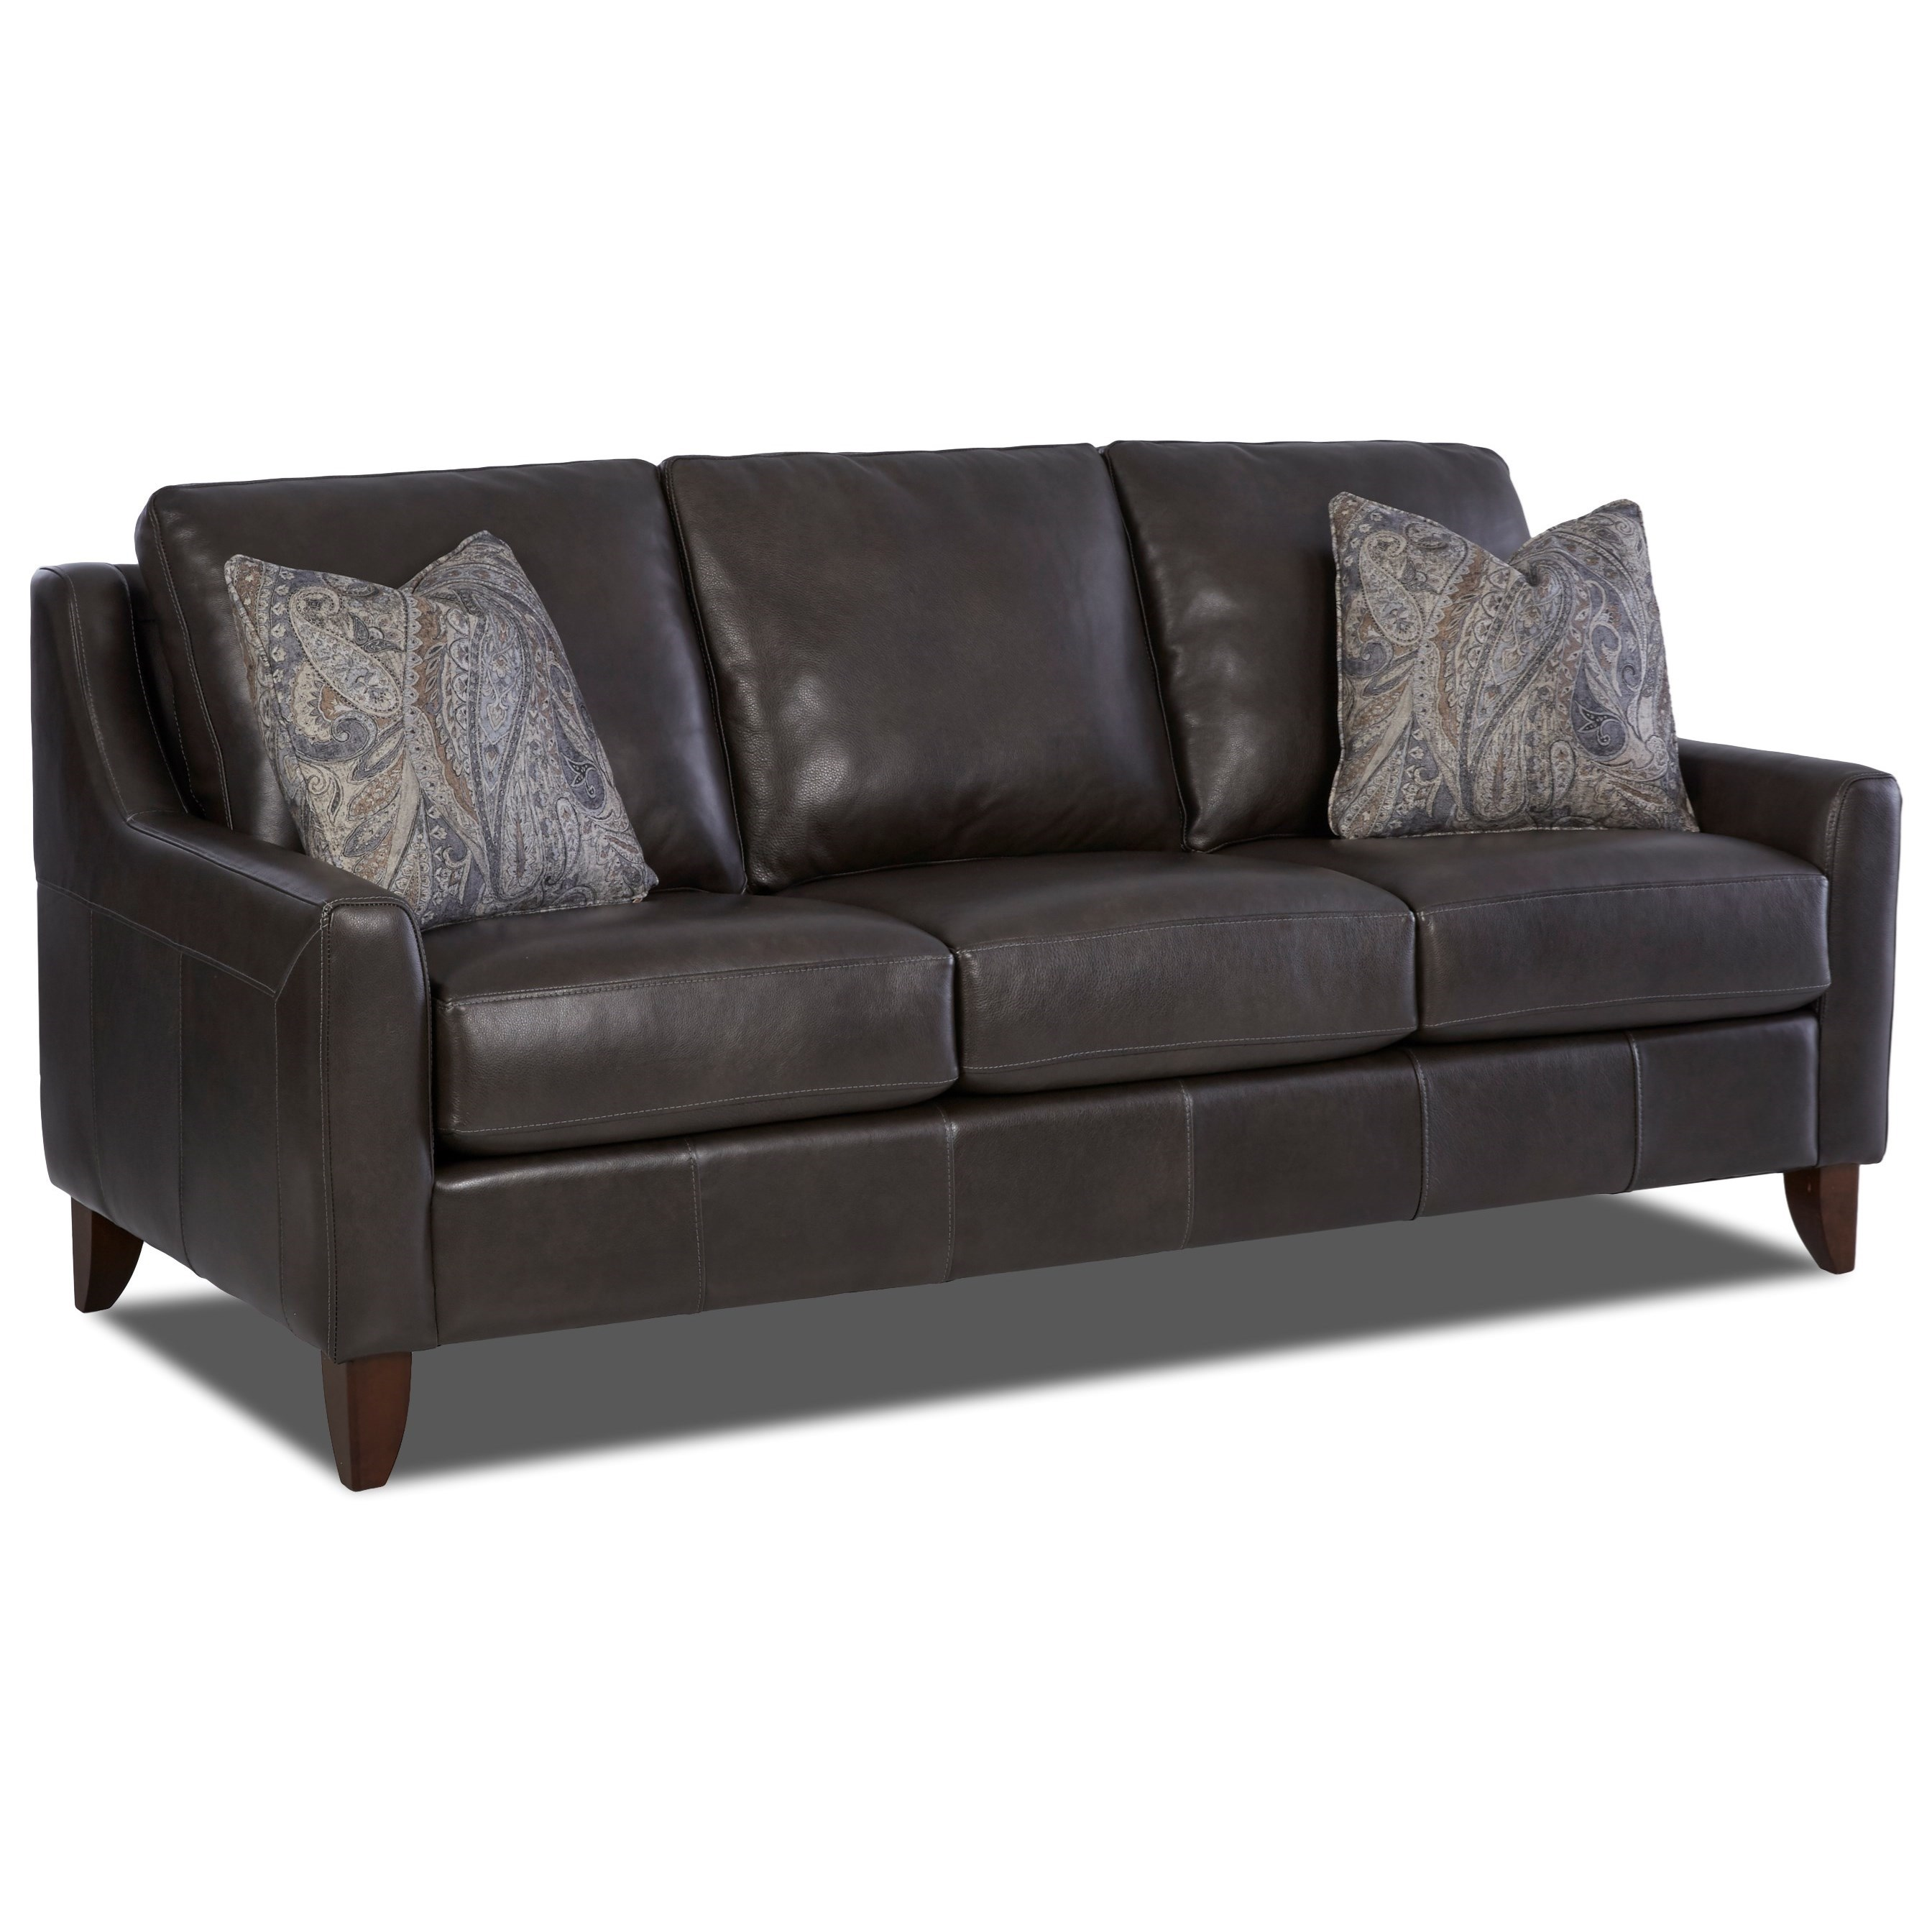 BELTON Leather Sofa w/ Pillows